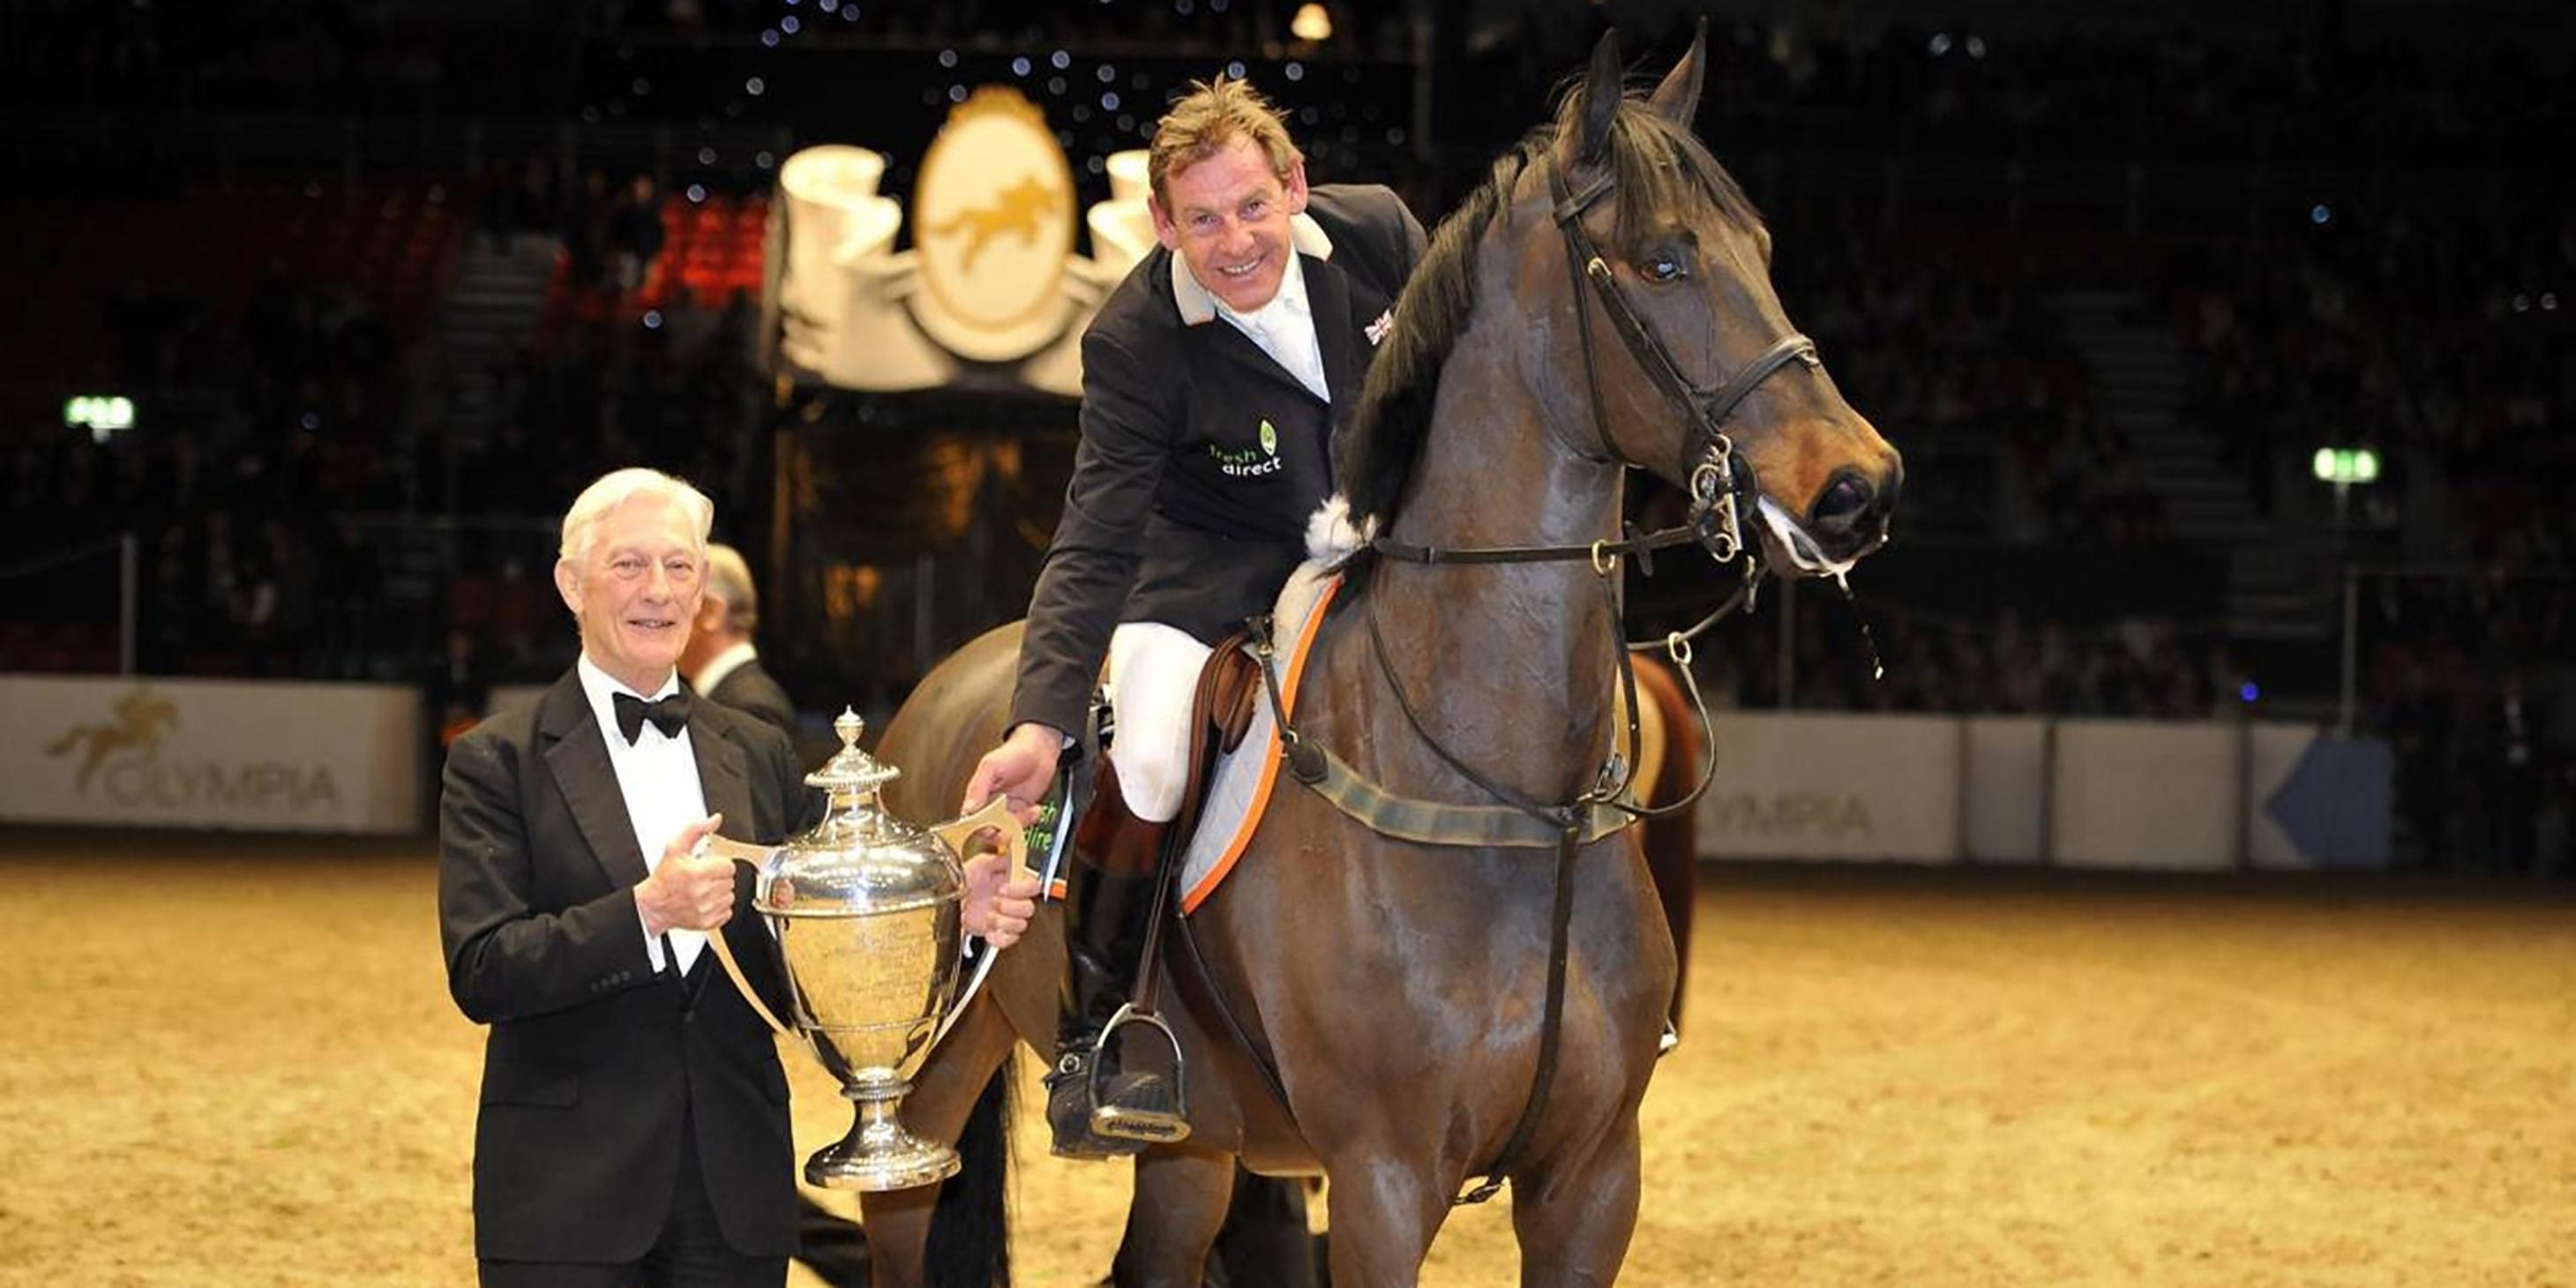 Tim Stockdale at the London Olympia Horse Show